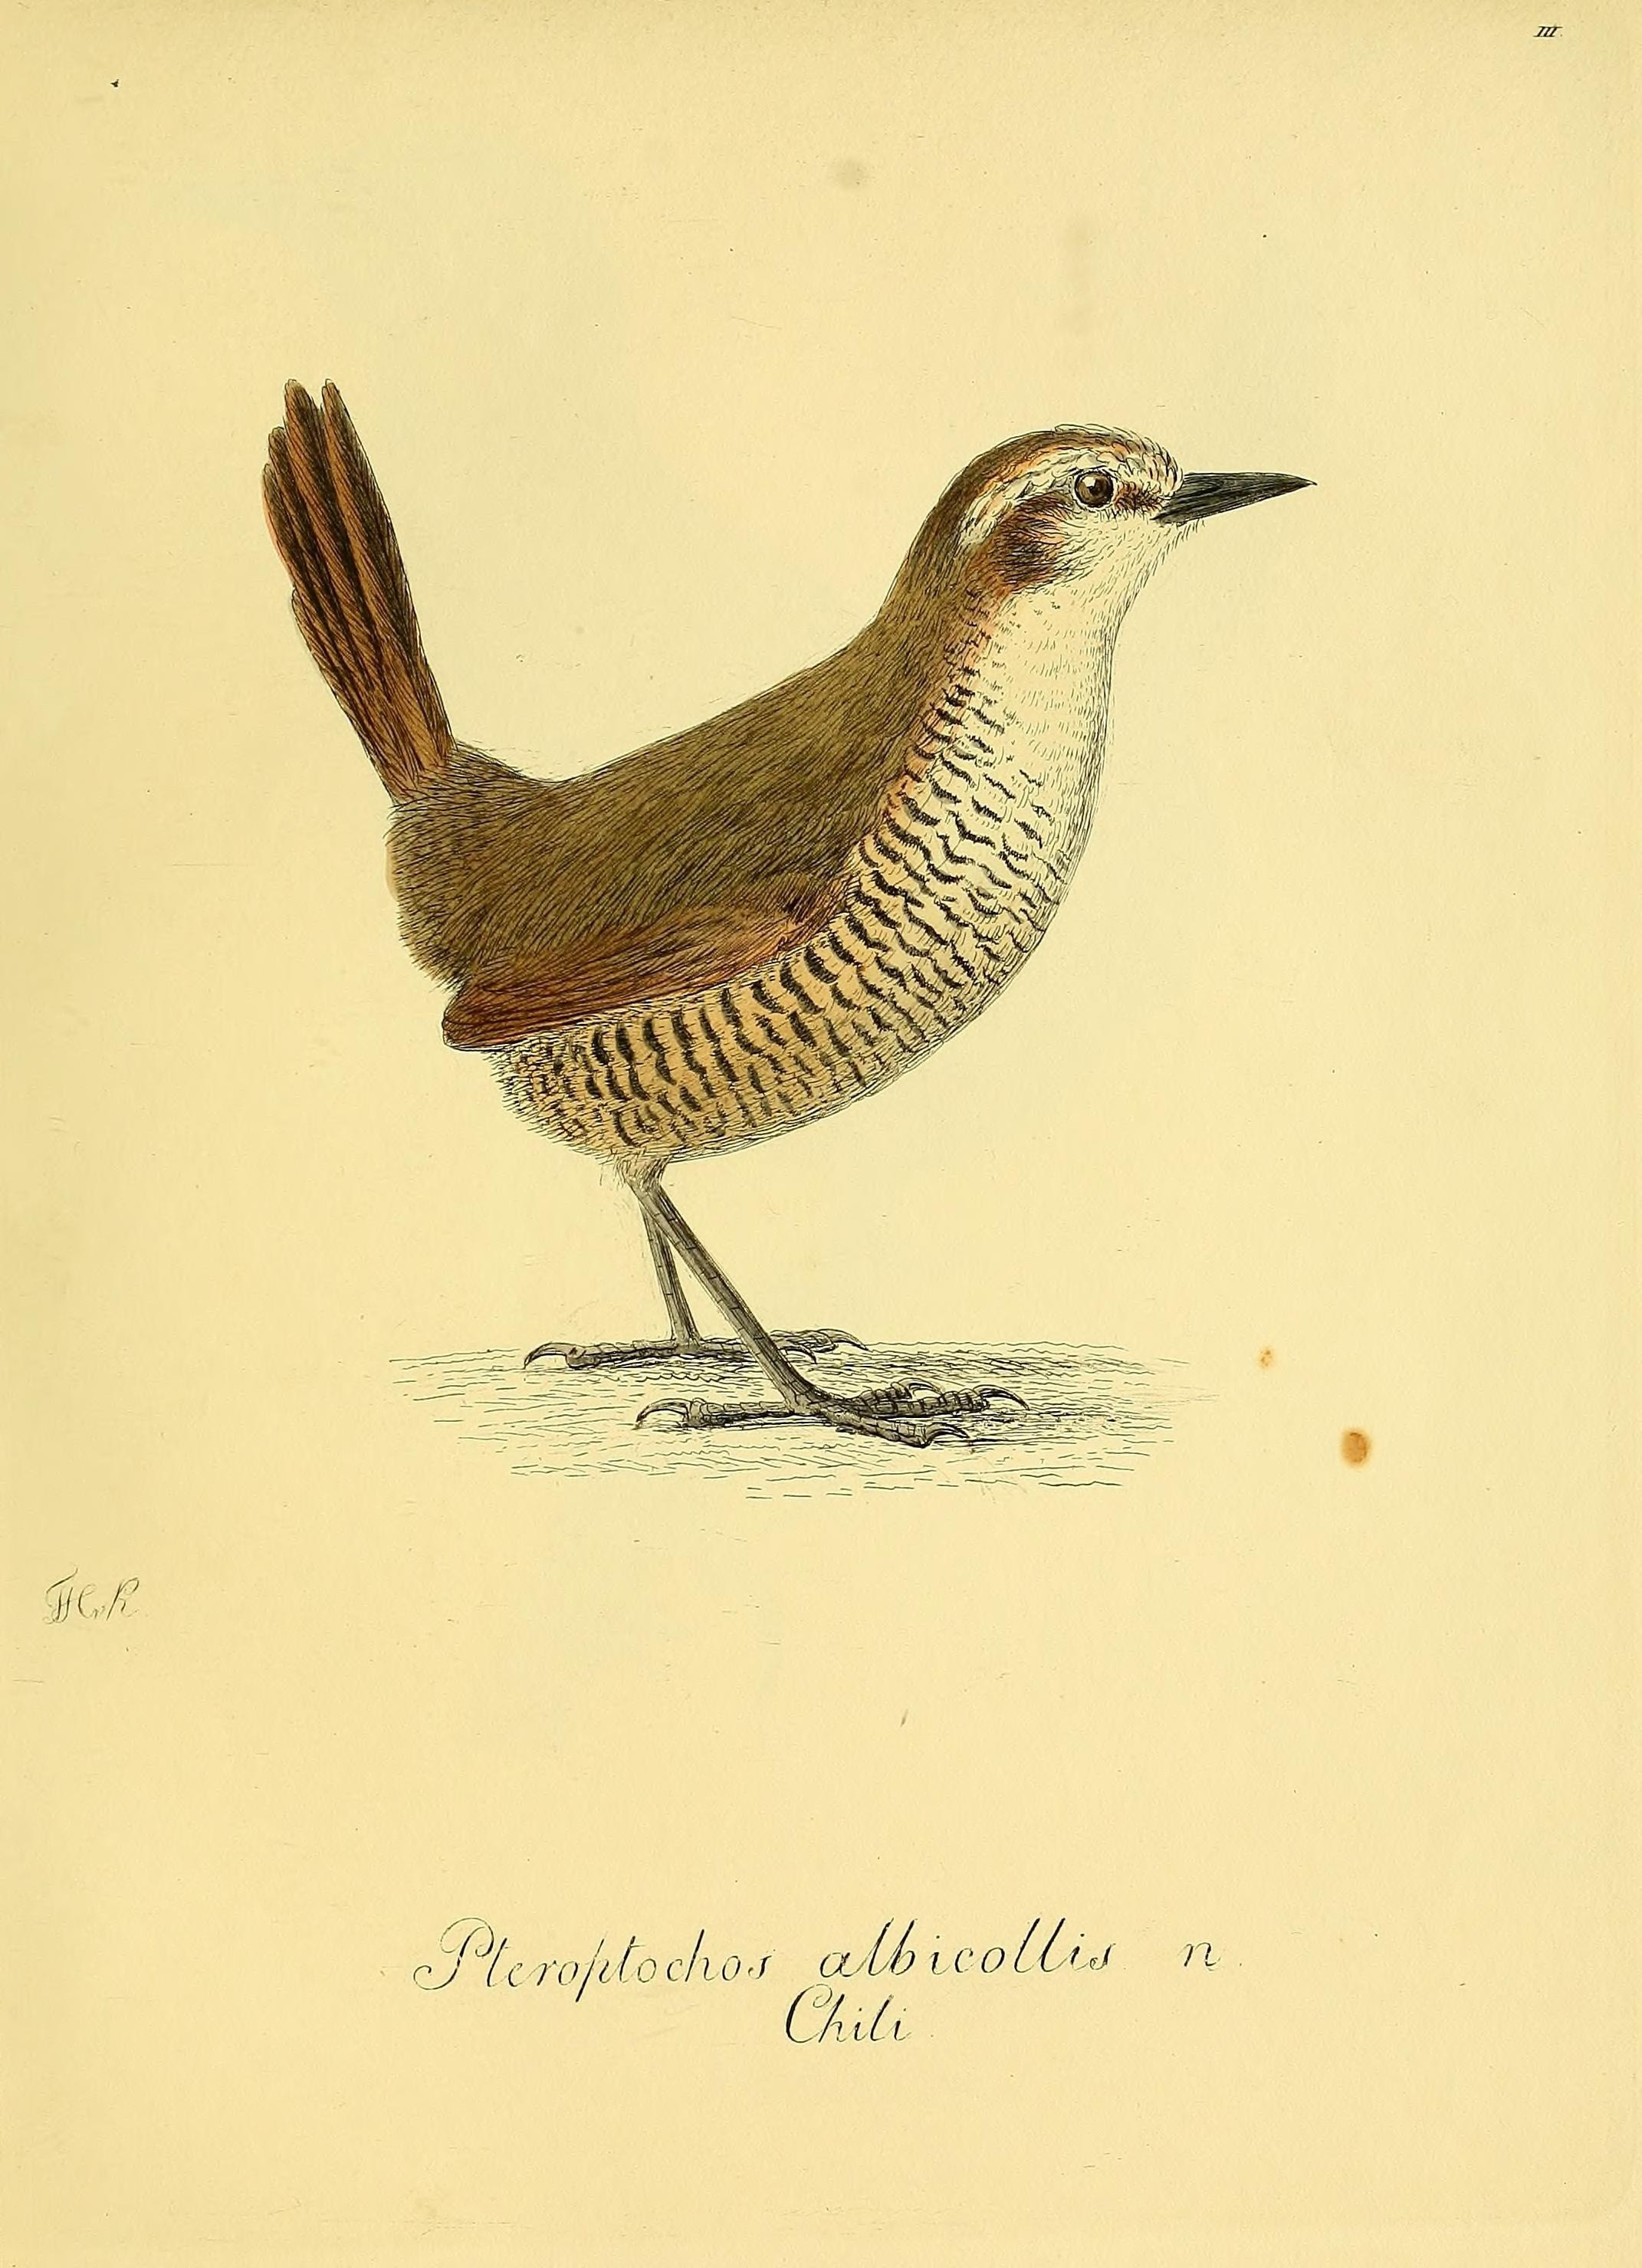 Image of White-throated Tapaculo